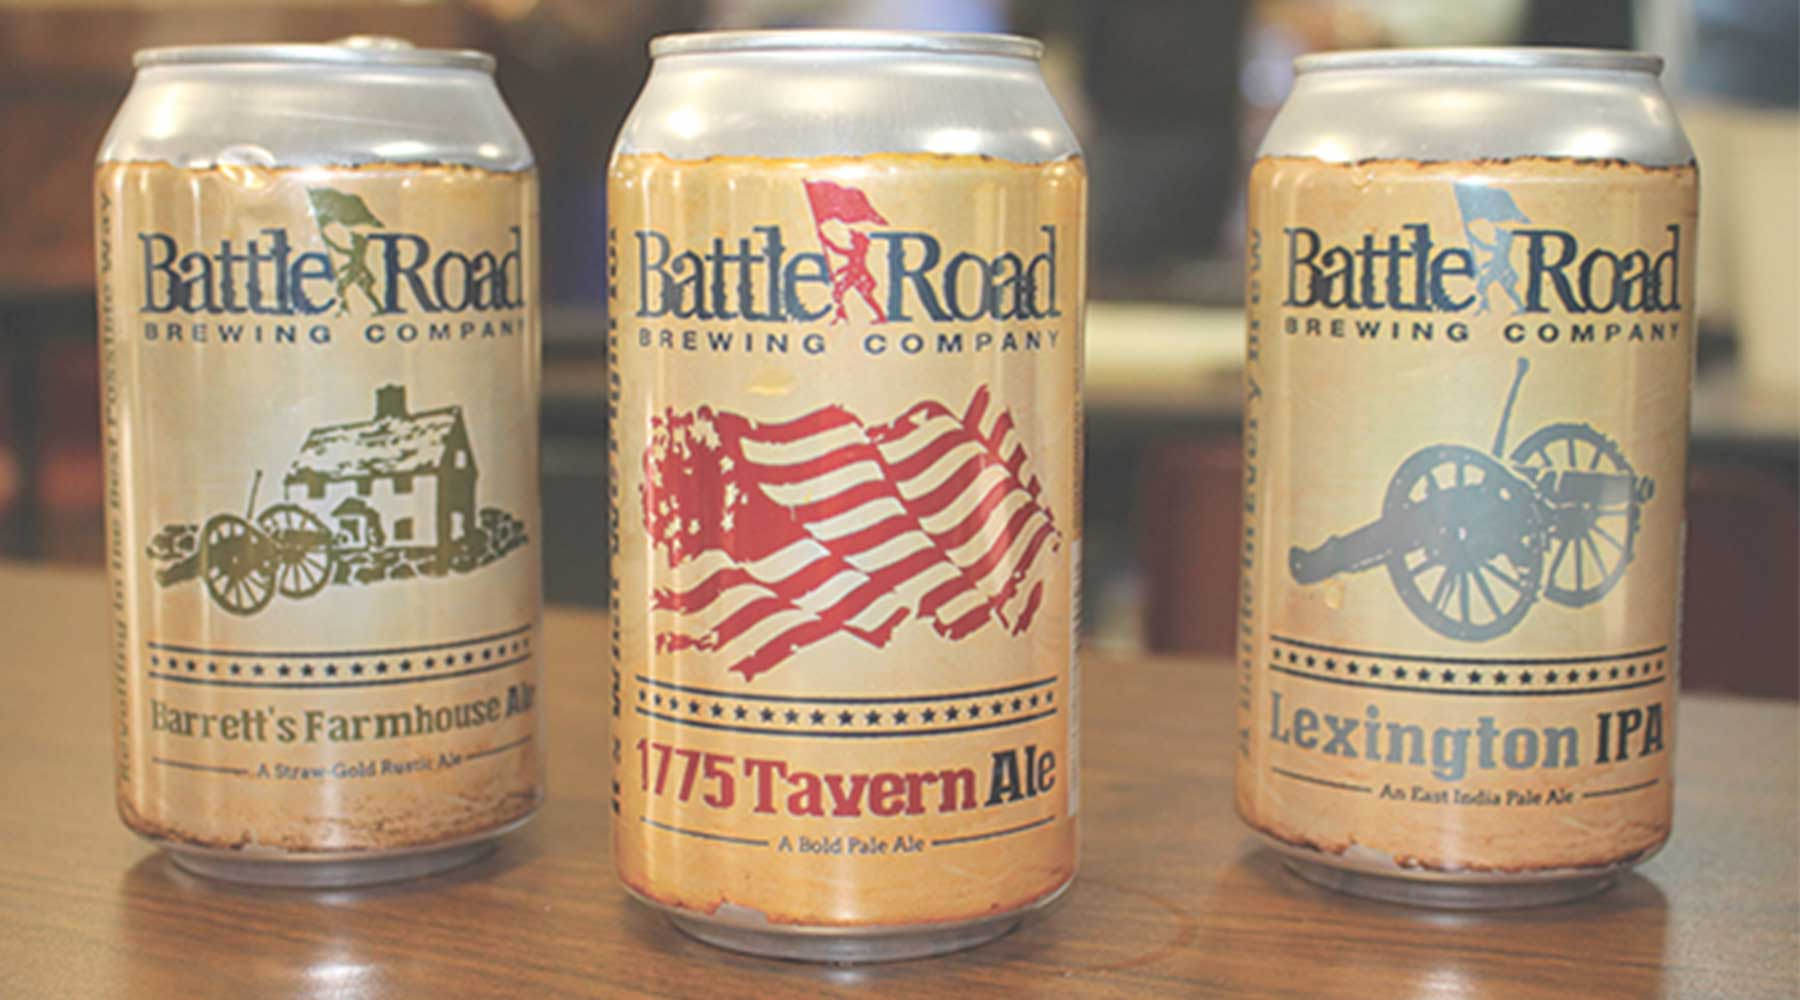 Battle Road Brewing Company | Just Wine